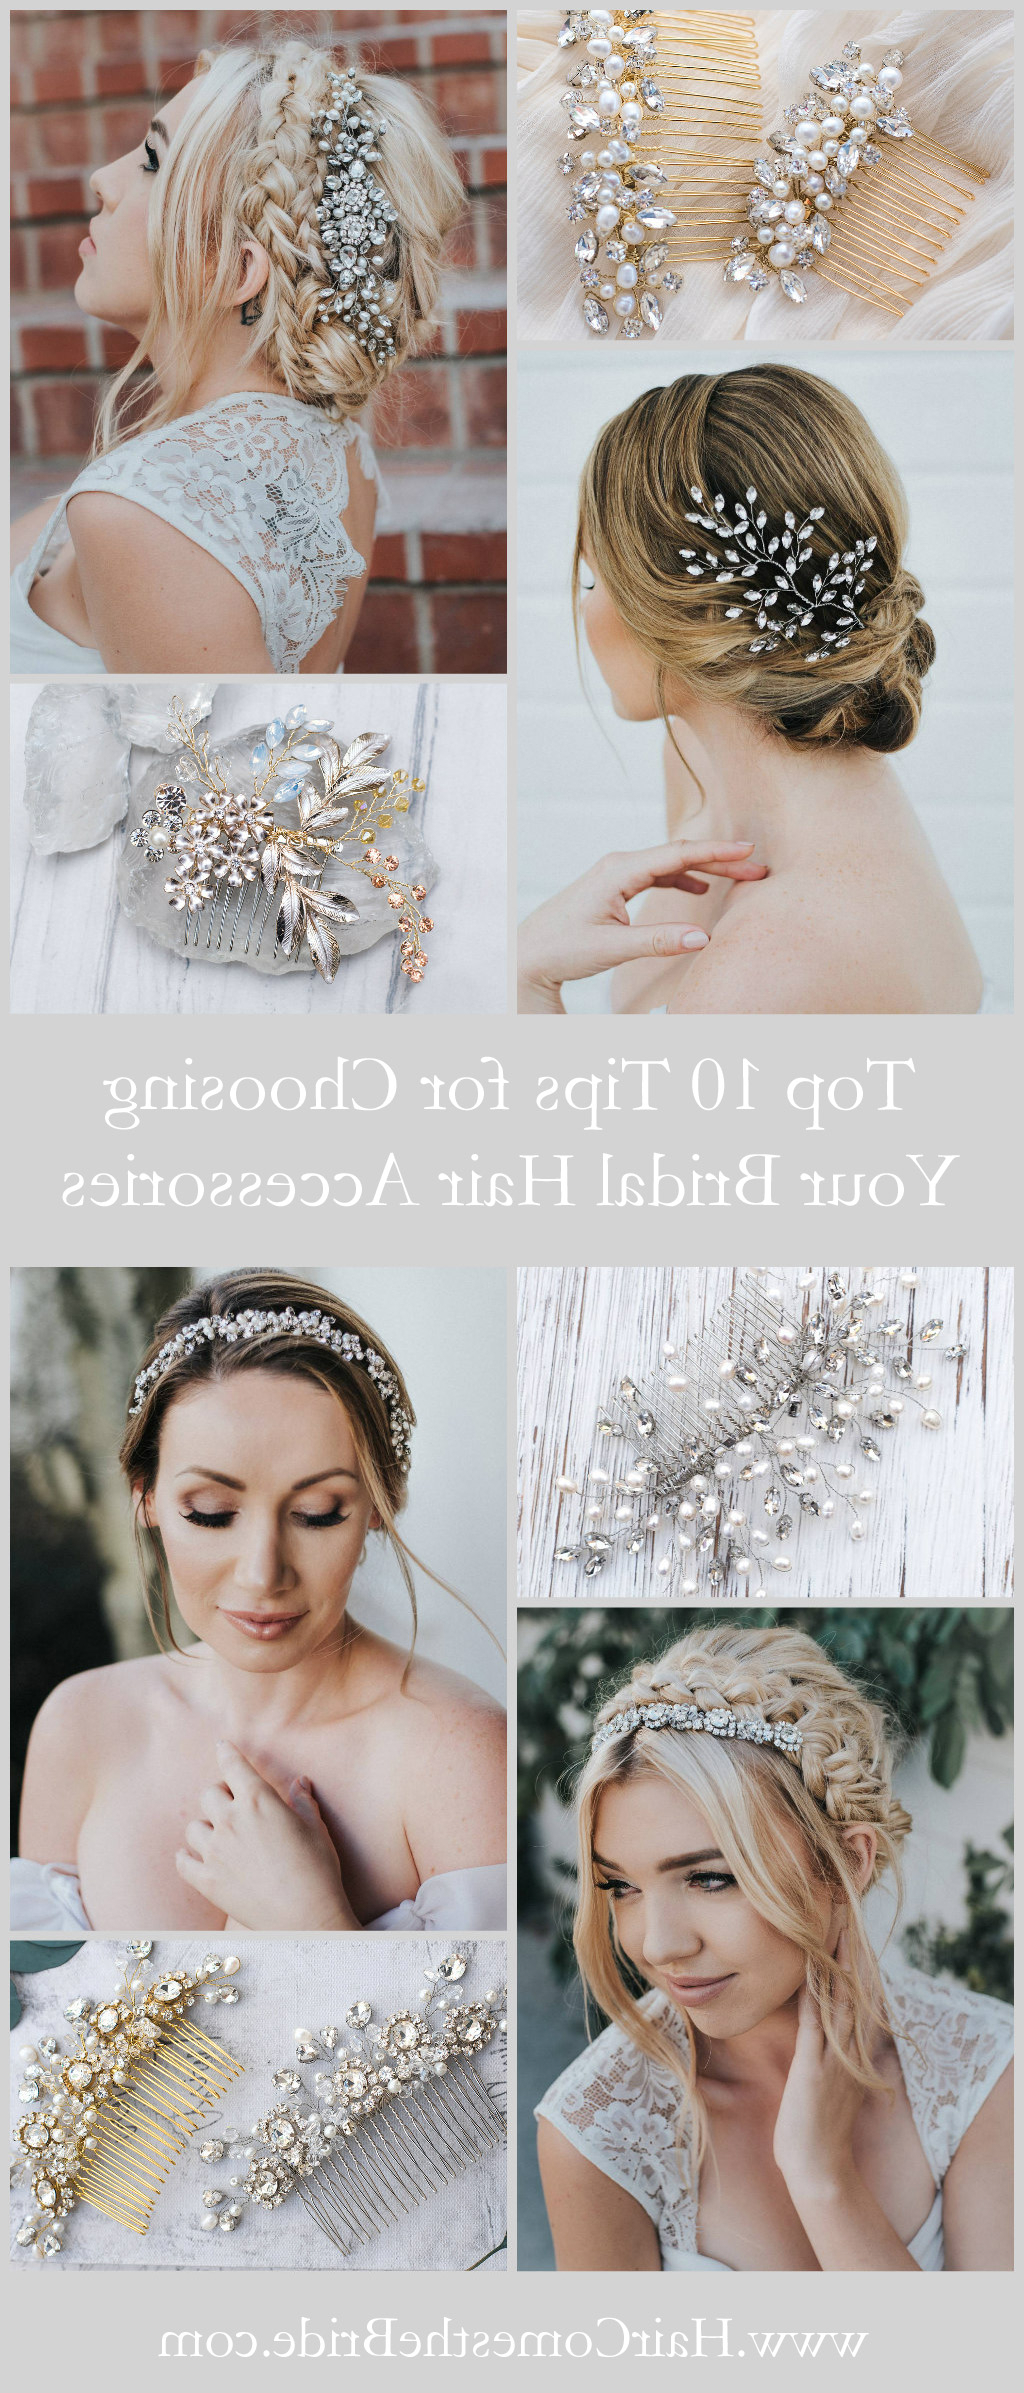 Well Known Crown Braid, Bouffant And Headpiece Bridal Hairstyles Inside Top 10 Tips For Choosing Your Bridal Hair Accessories – Hair Comes (View 16 of 20)